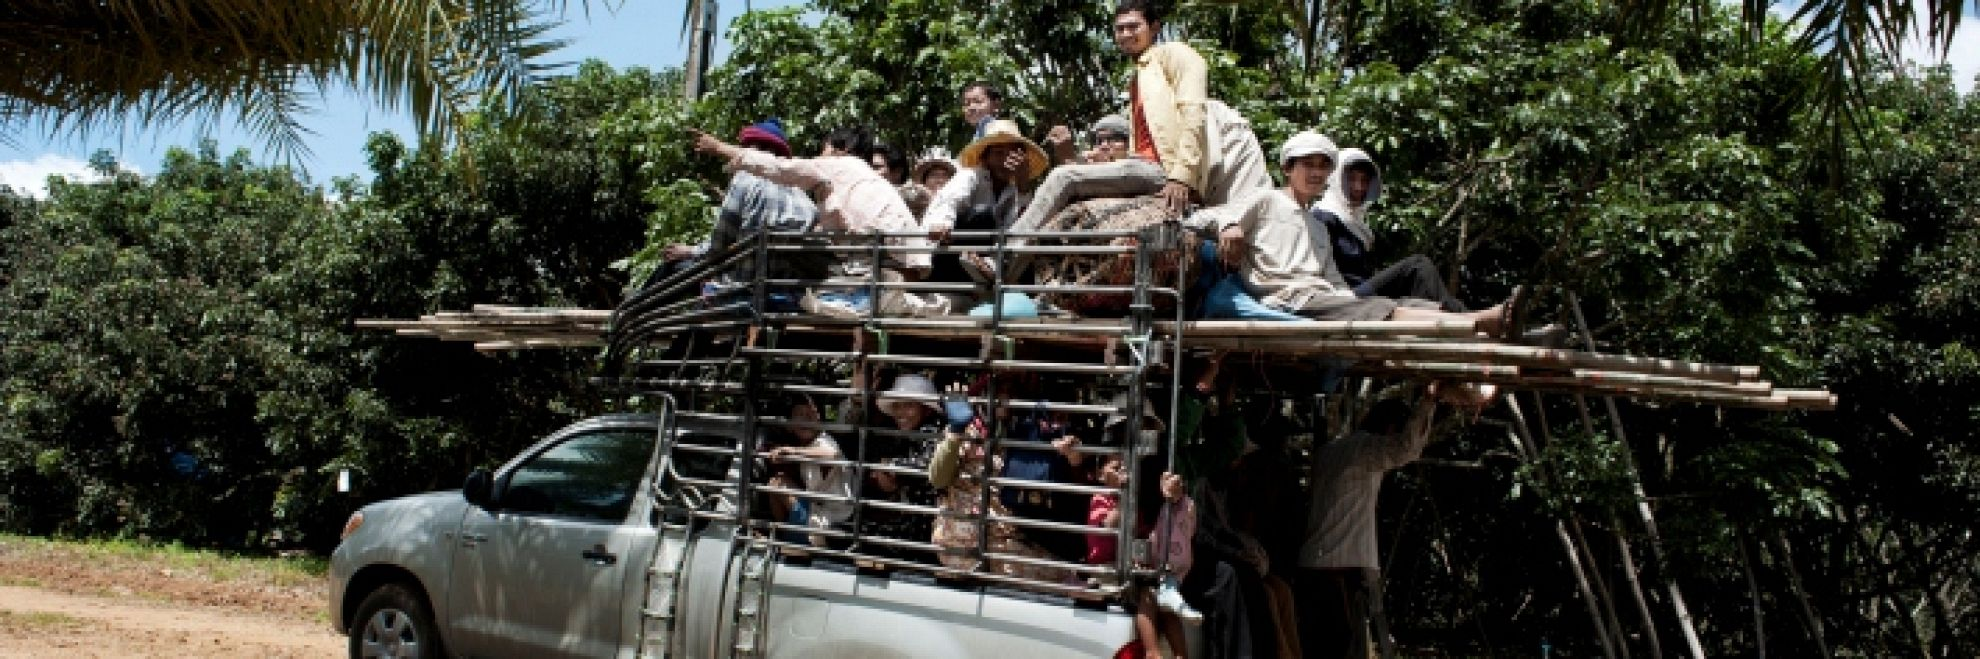 Latest News Burmese migrant workers